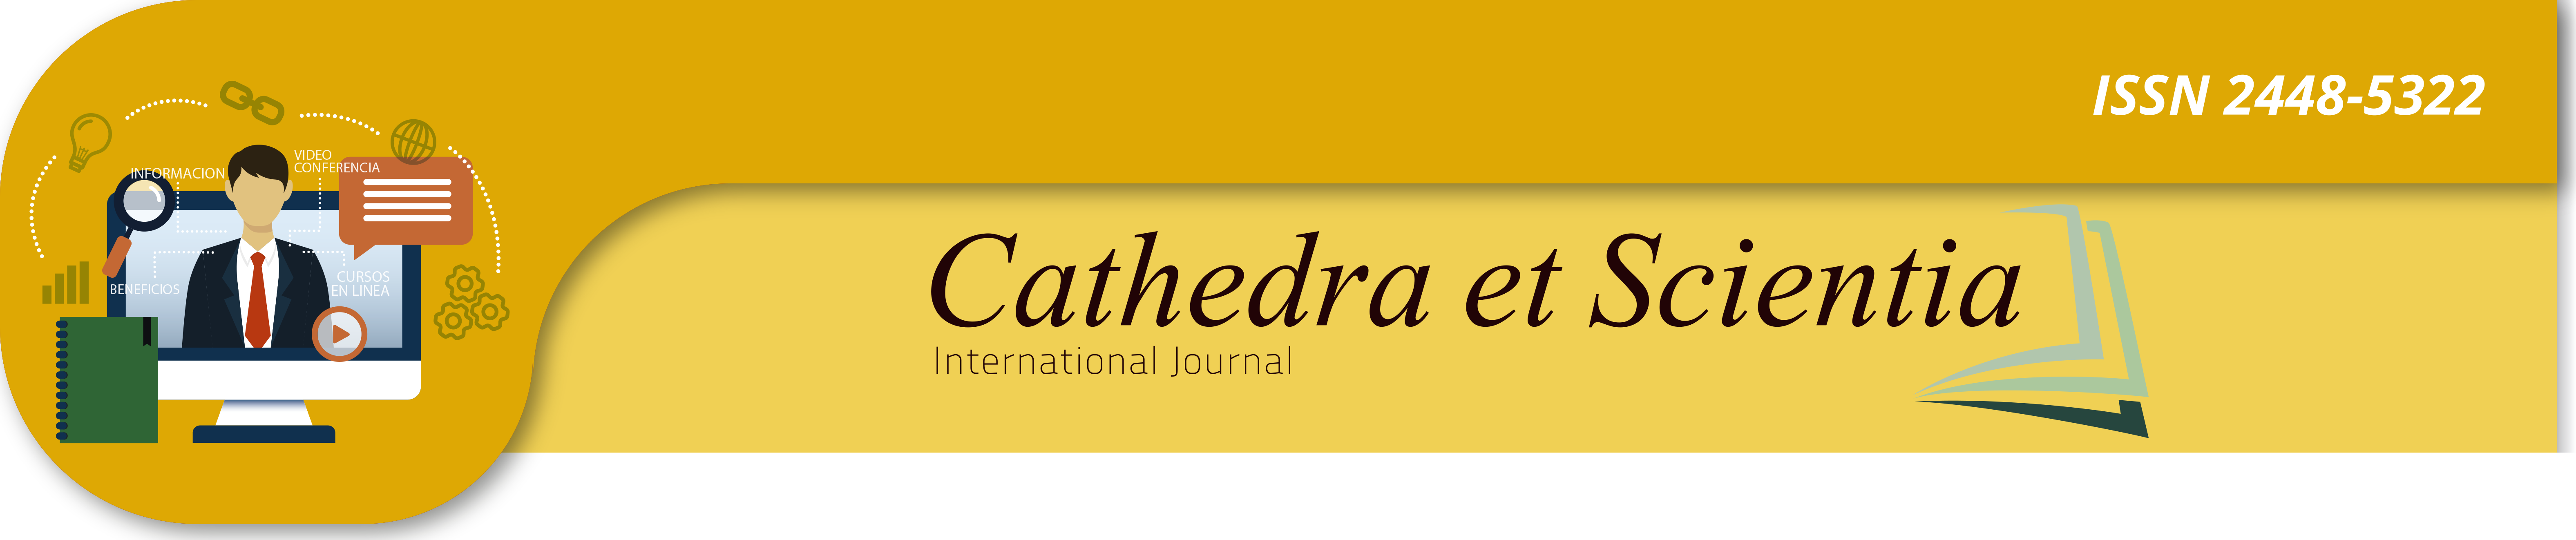 cathedra_et_scientia_international_journal.png